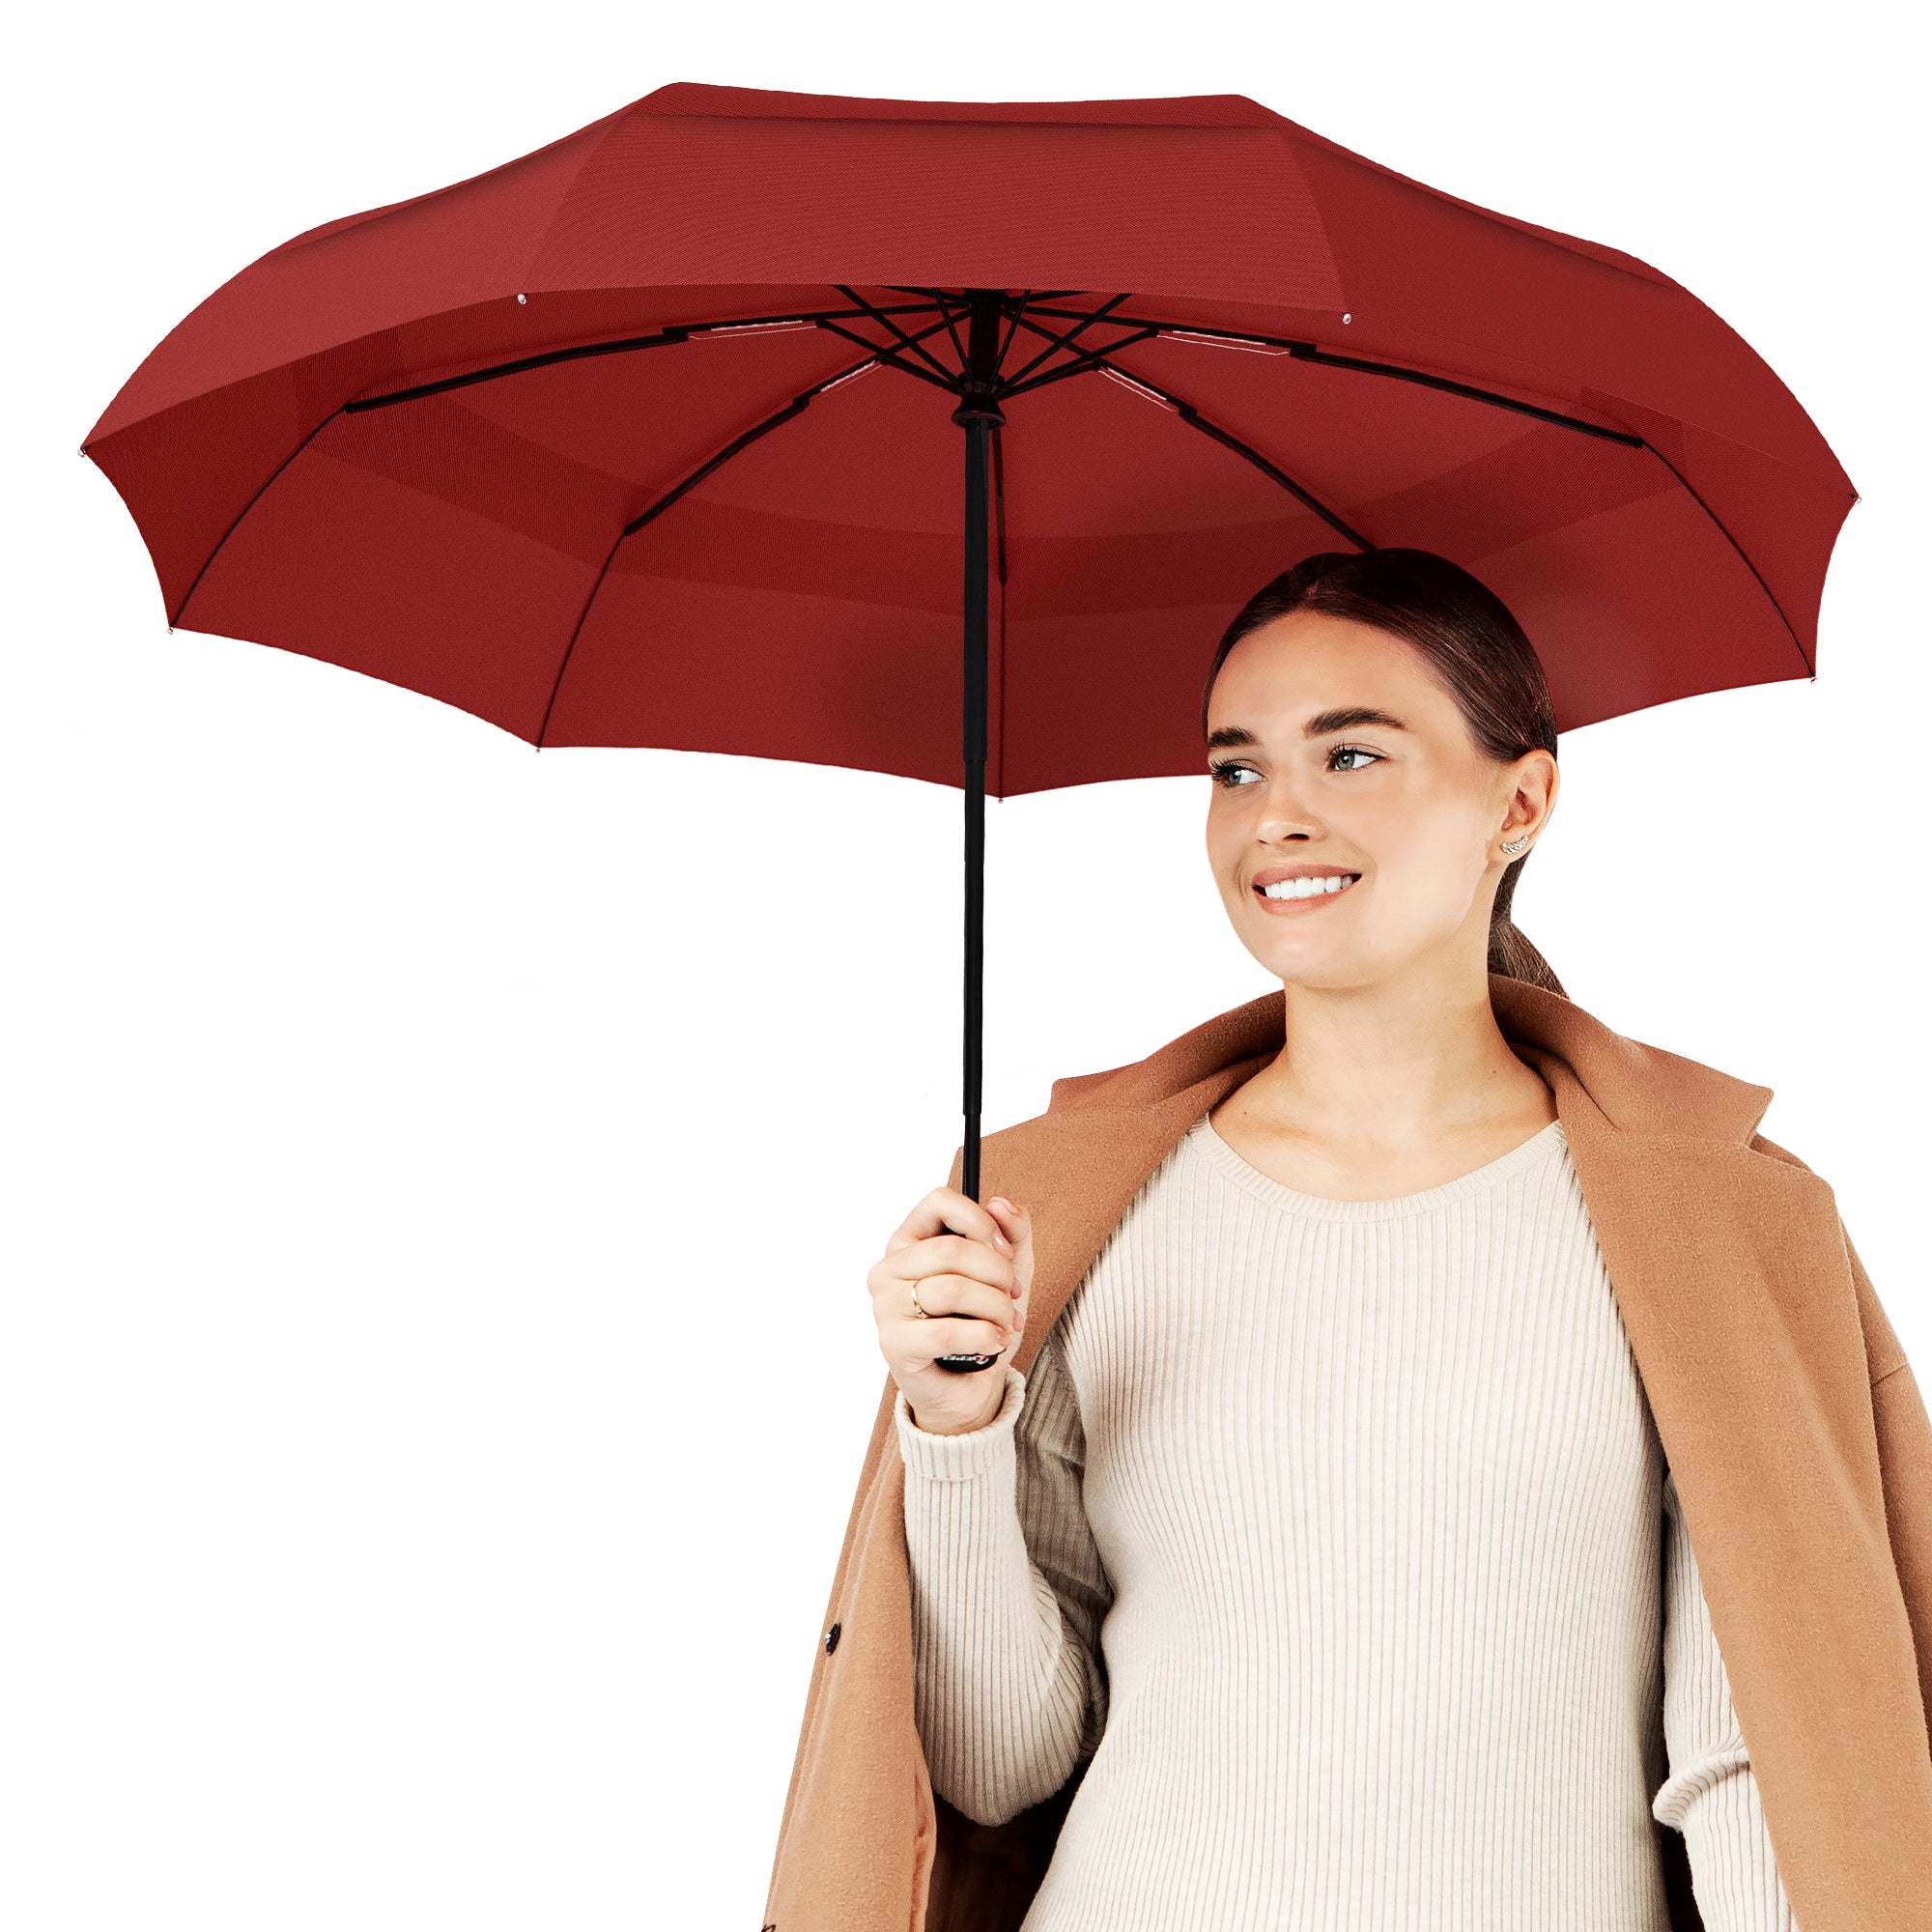 Windproof Travel Umbrella - Compact, Automatic, Red